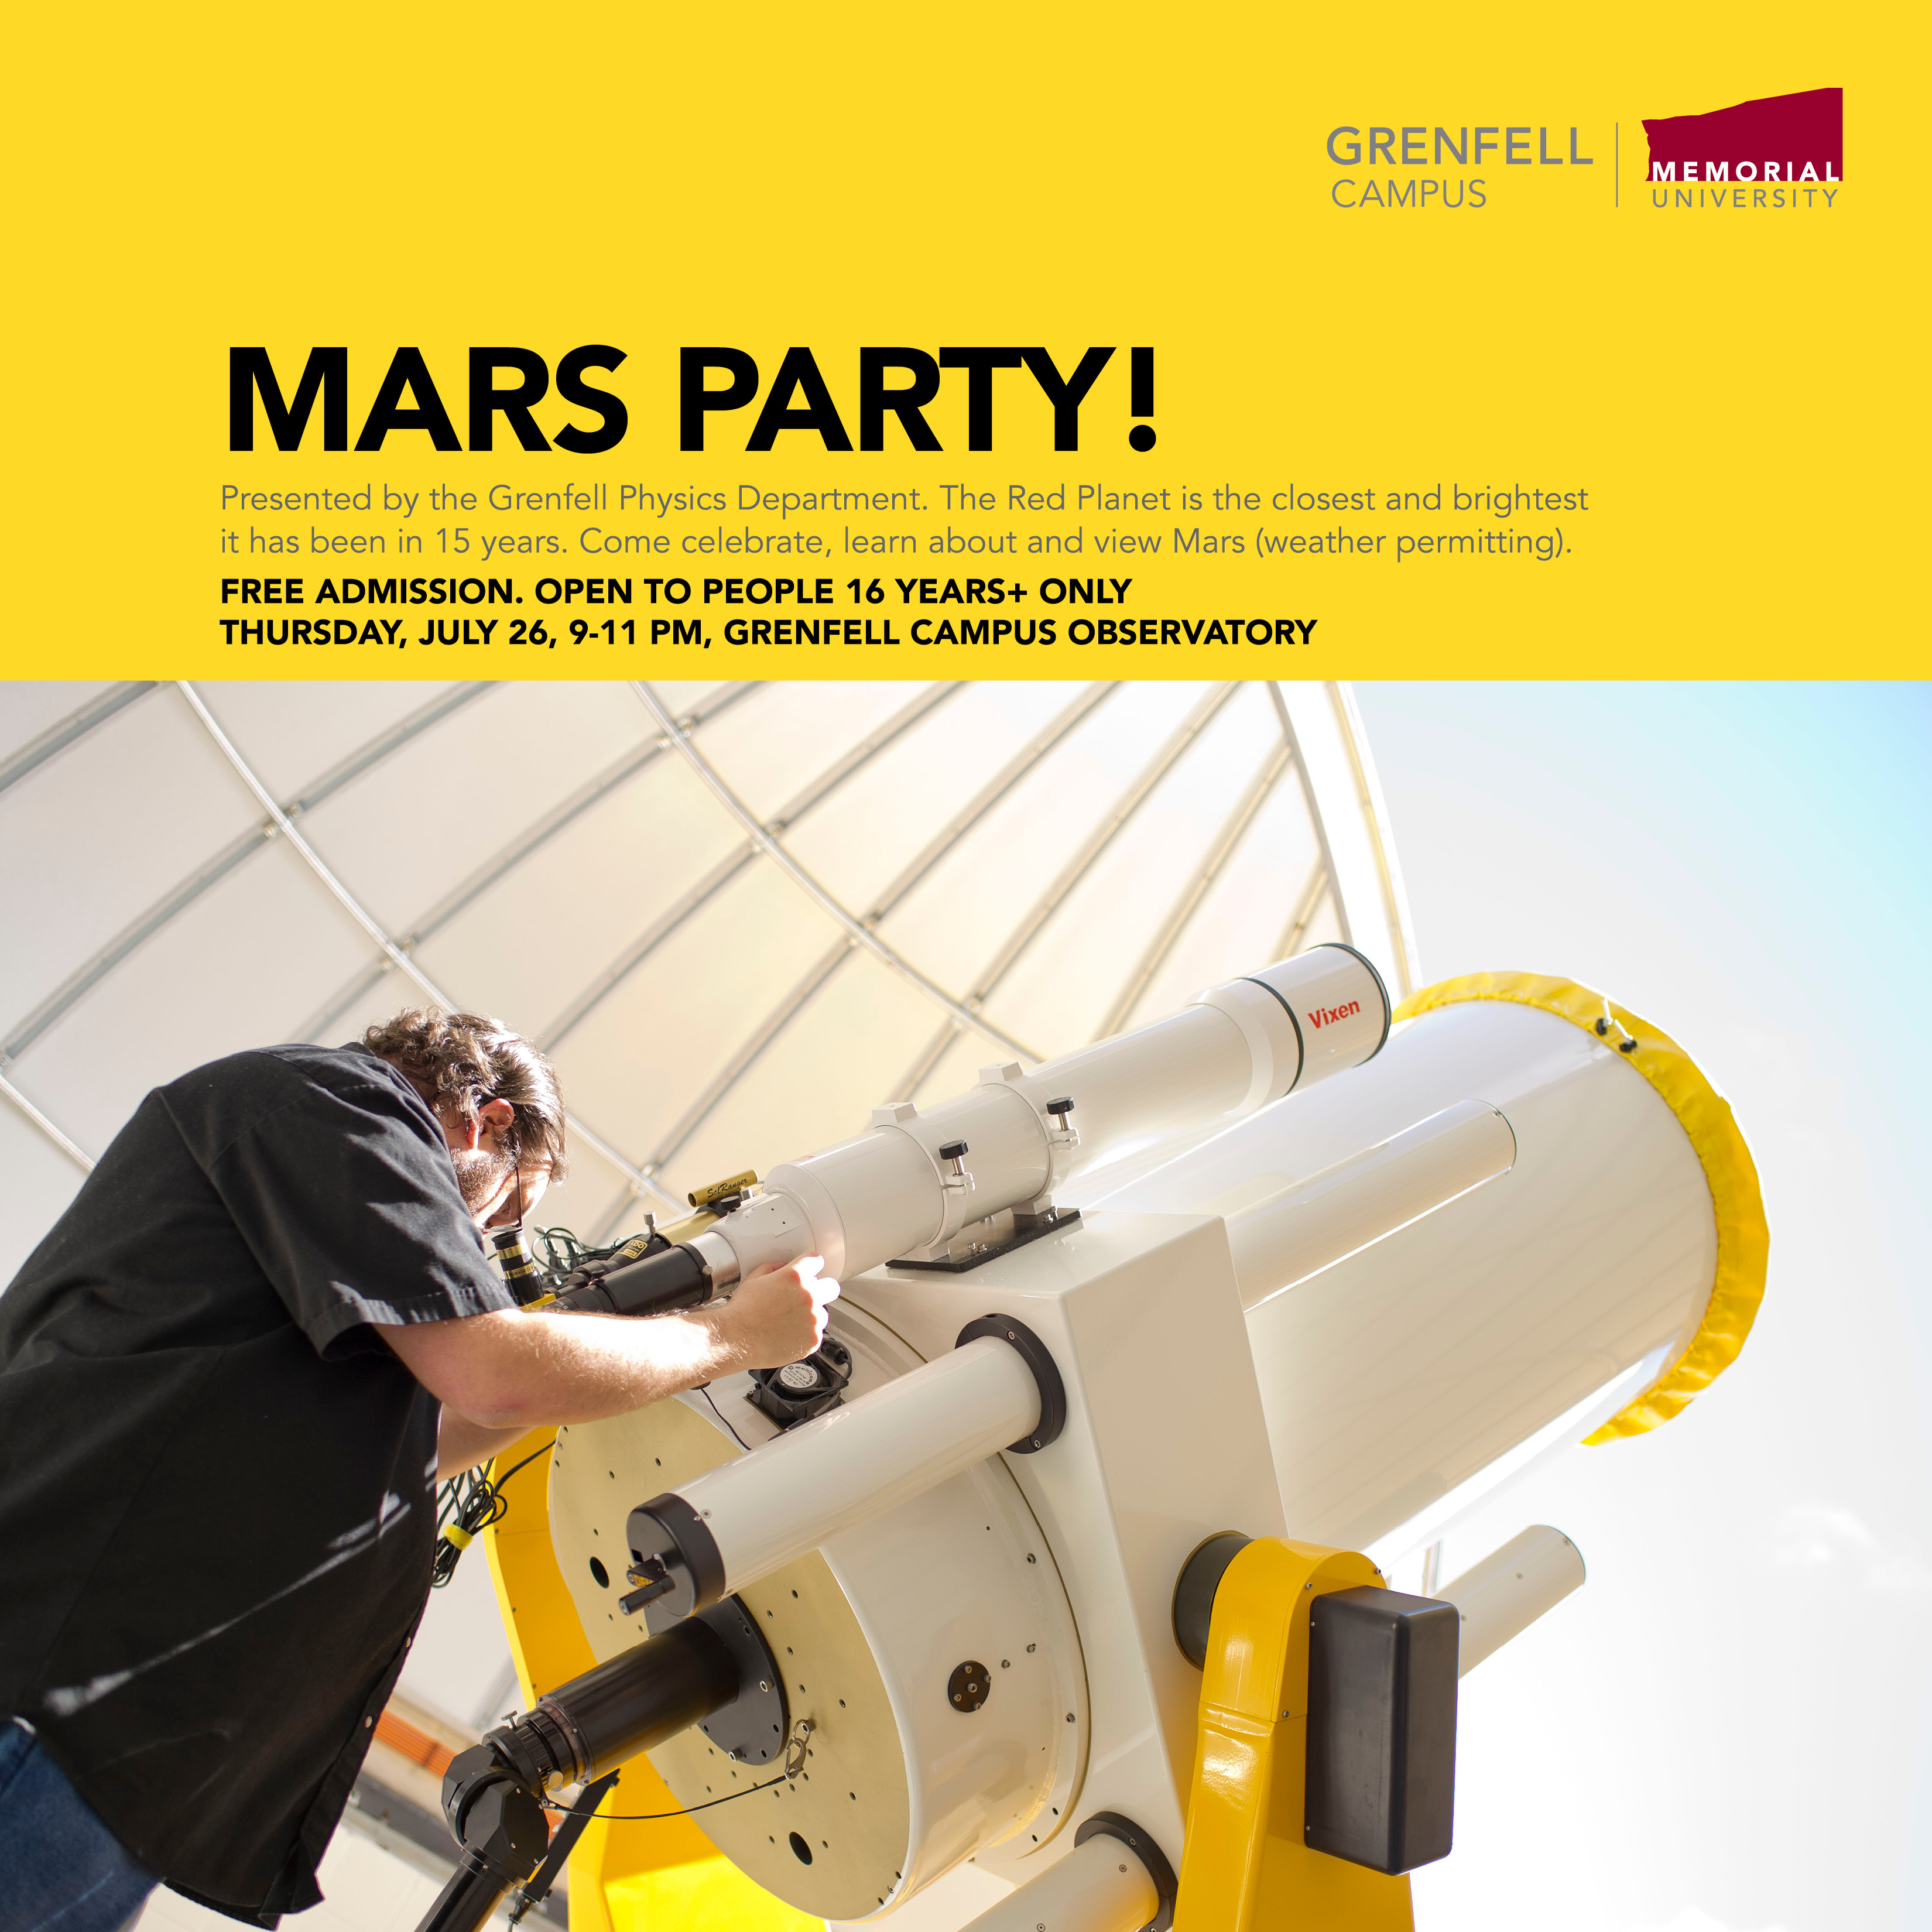 mars_party_invitation.jpg